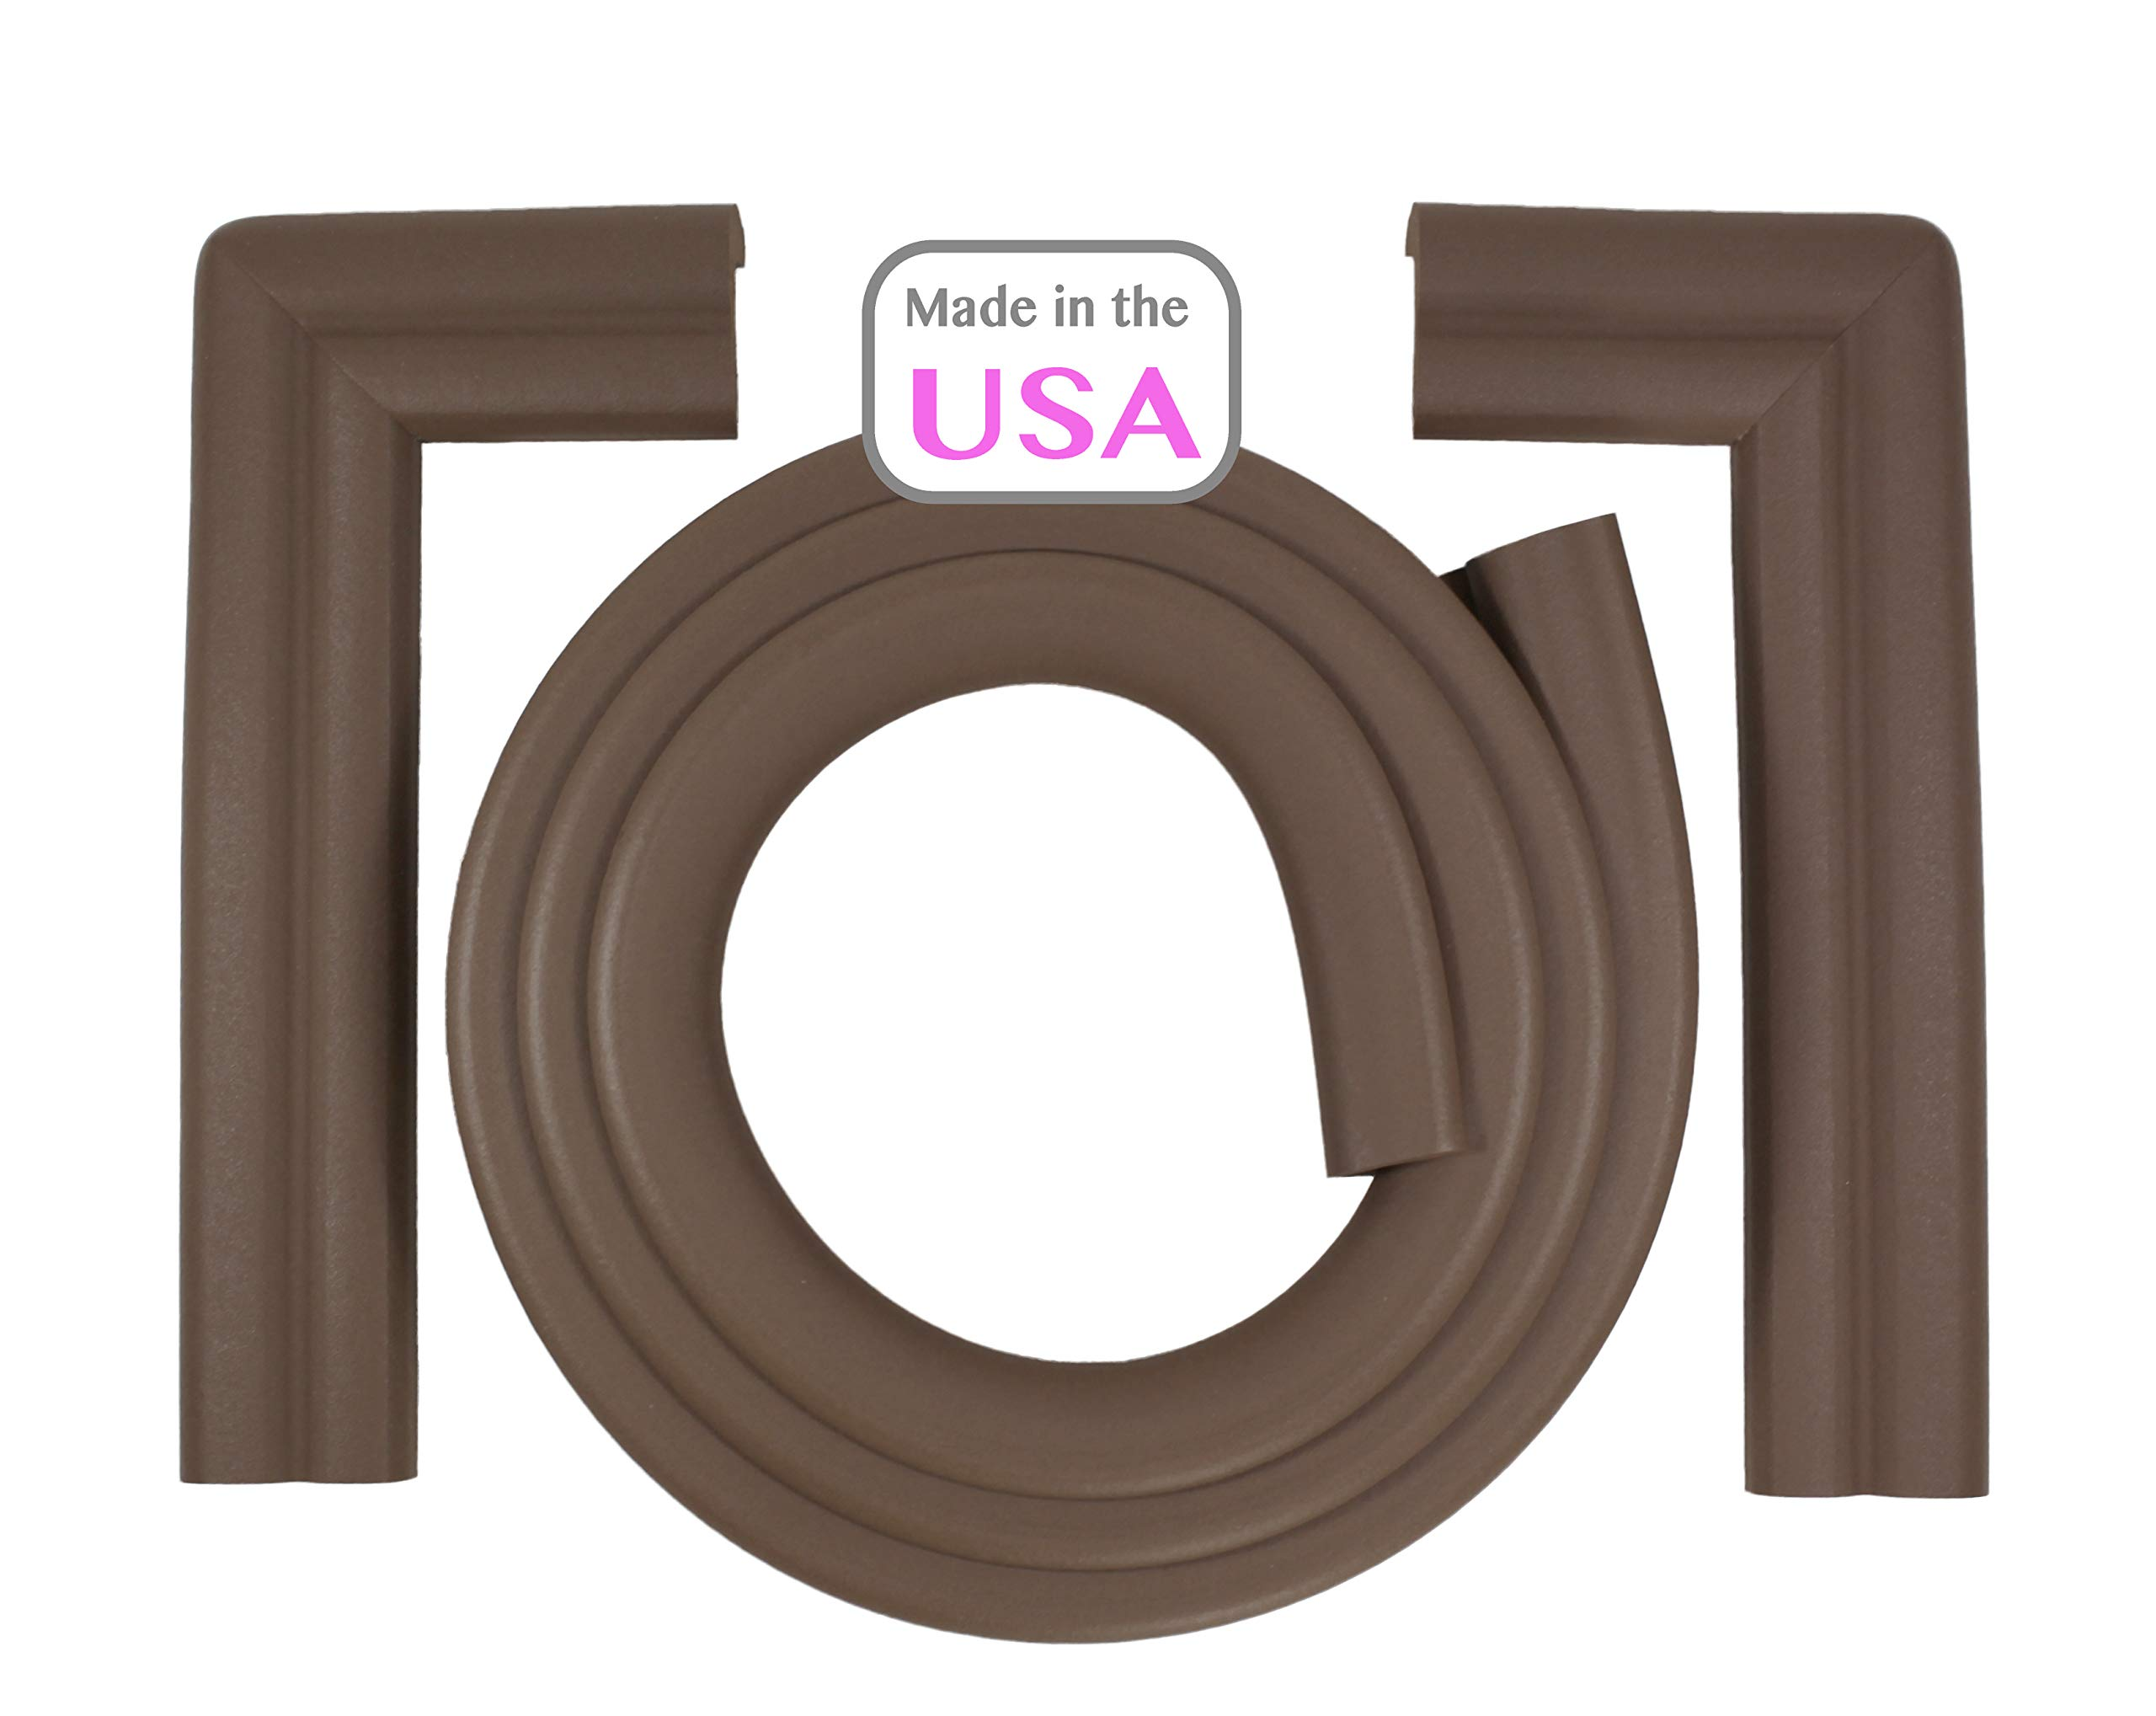 OOPSY Child Safety Hearth Guard Cushion, Brown by OOPSY Child Safety (Image #1)